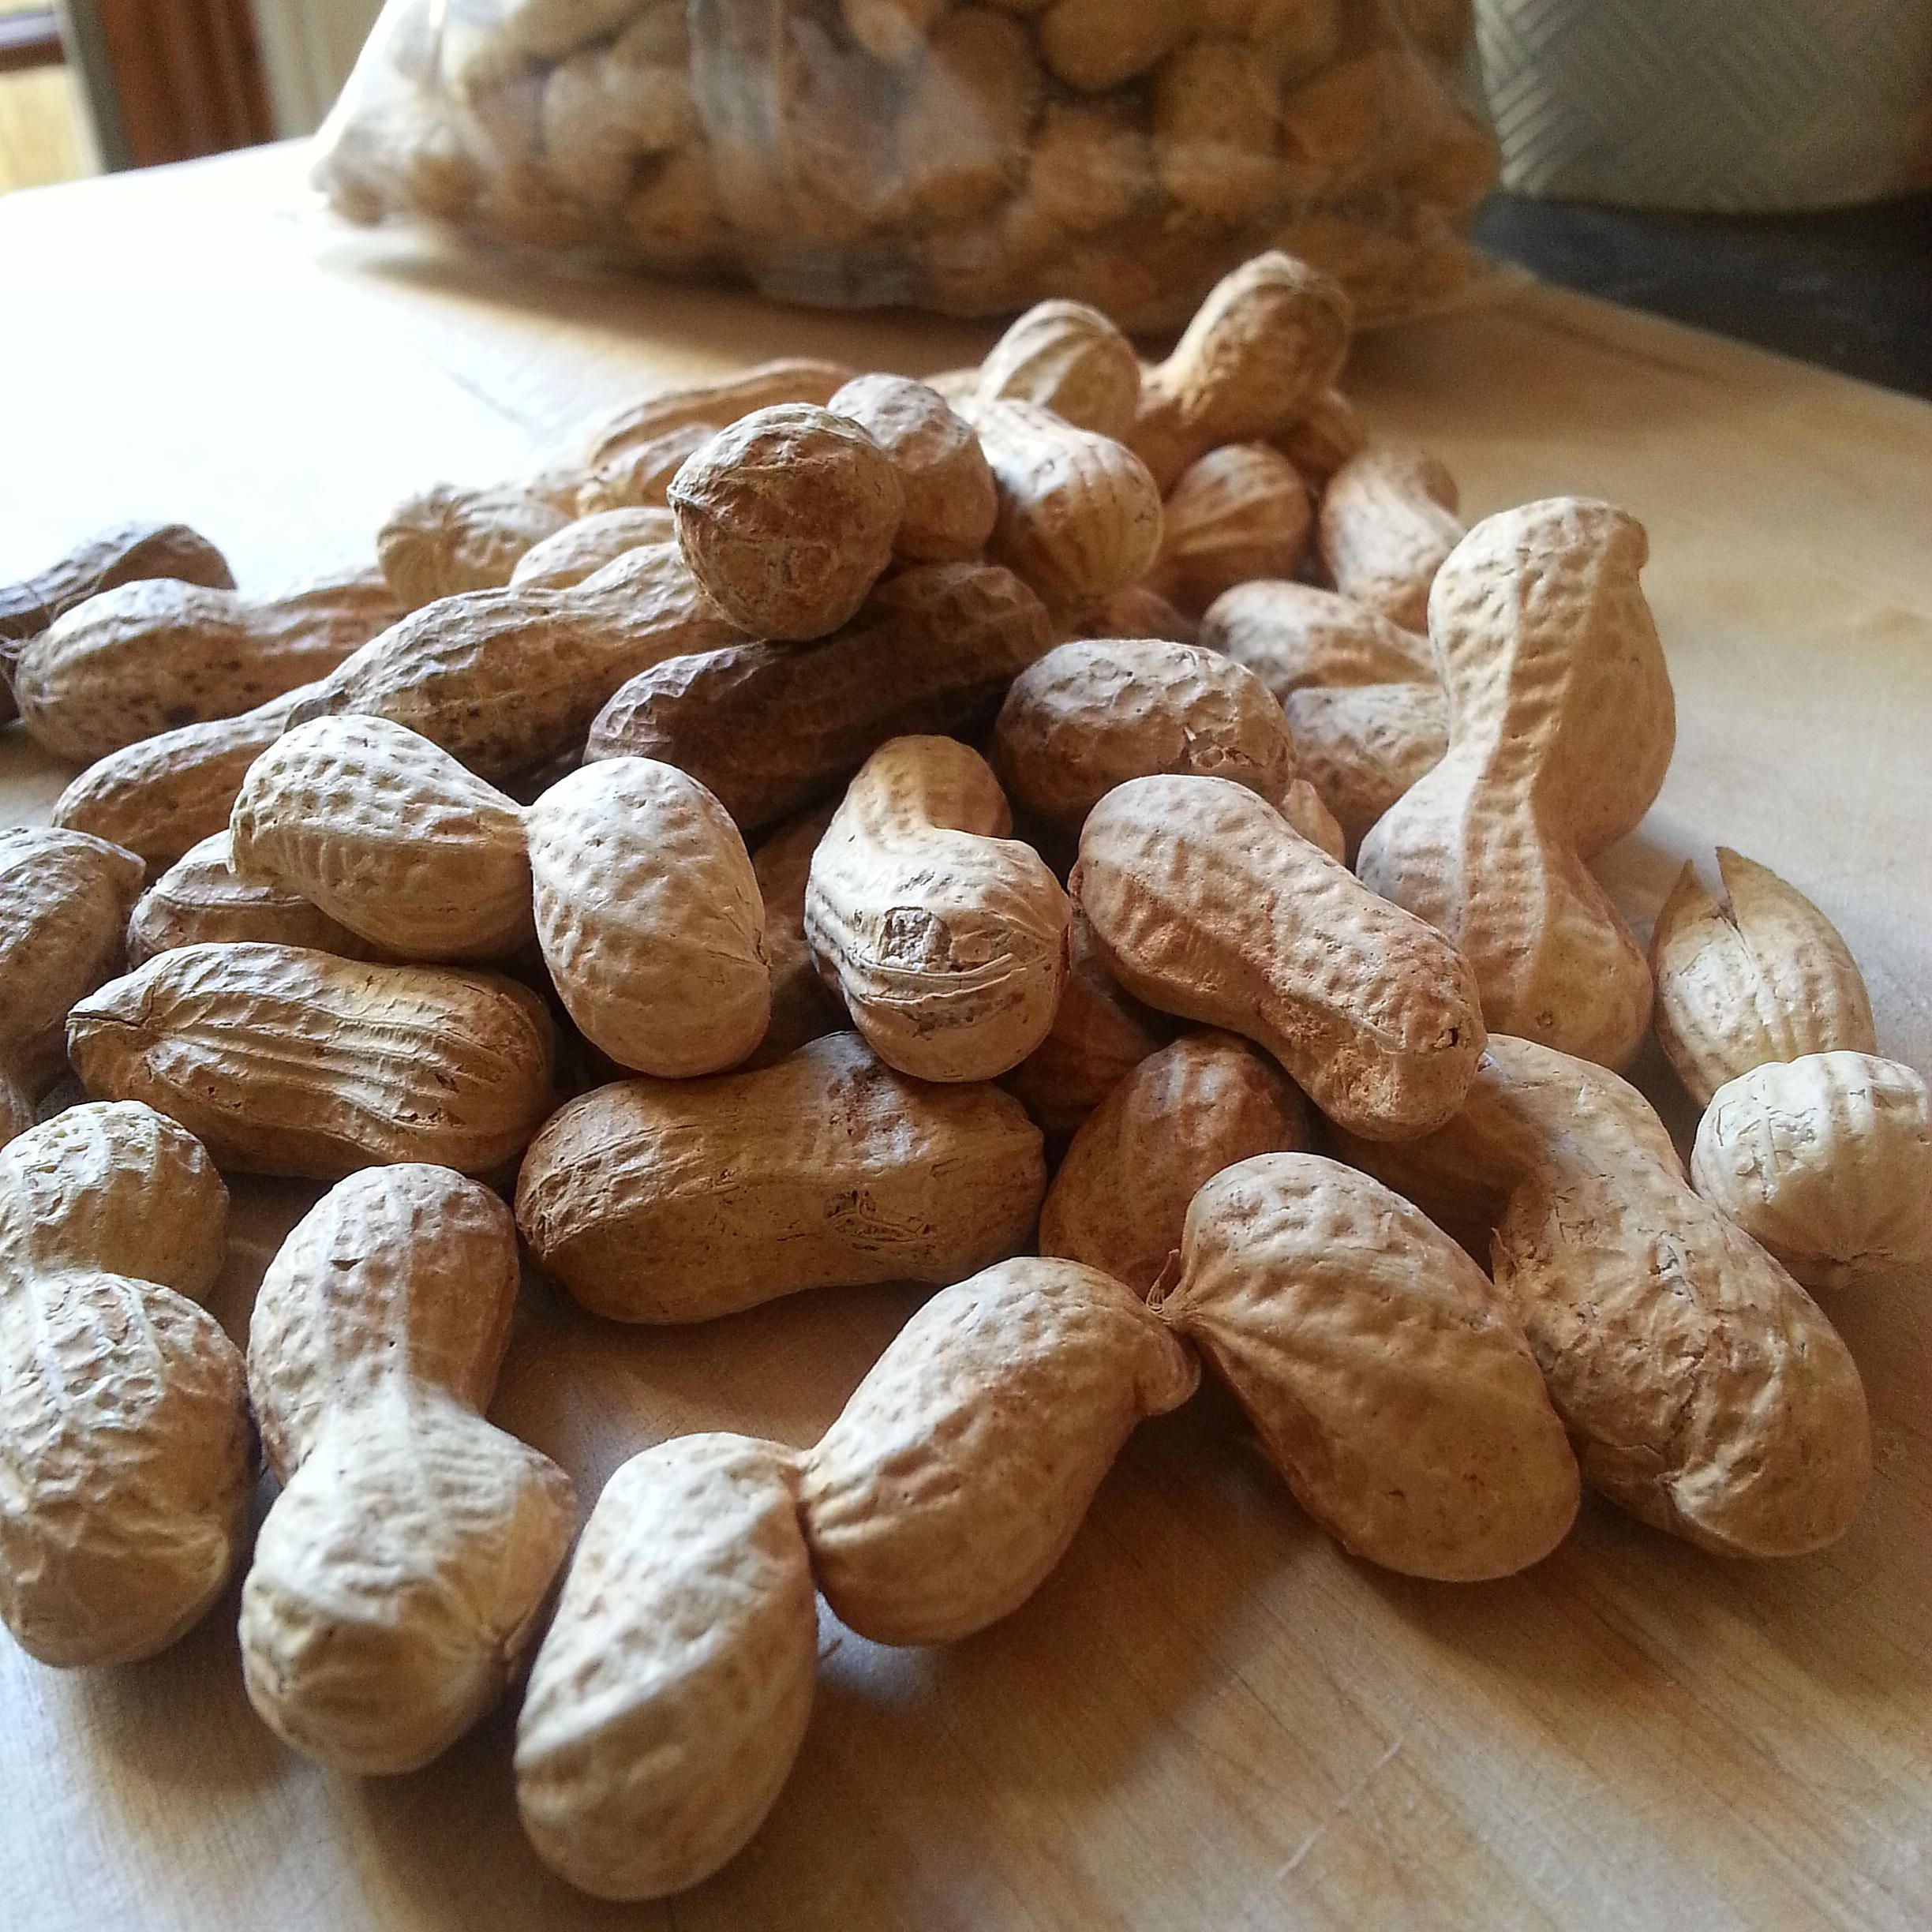 Peanuts in Shells